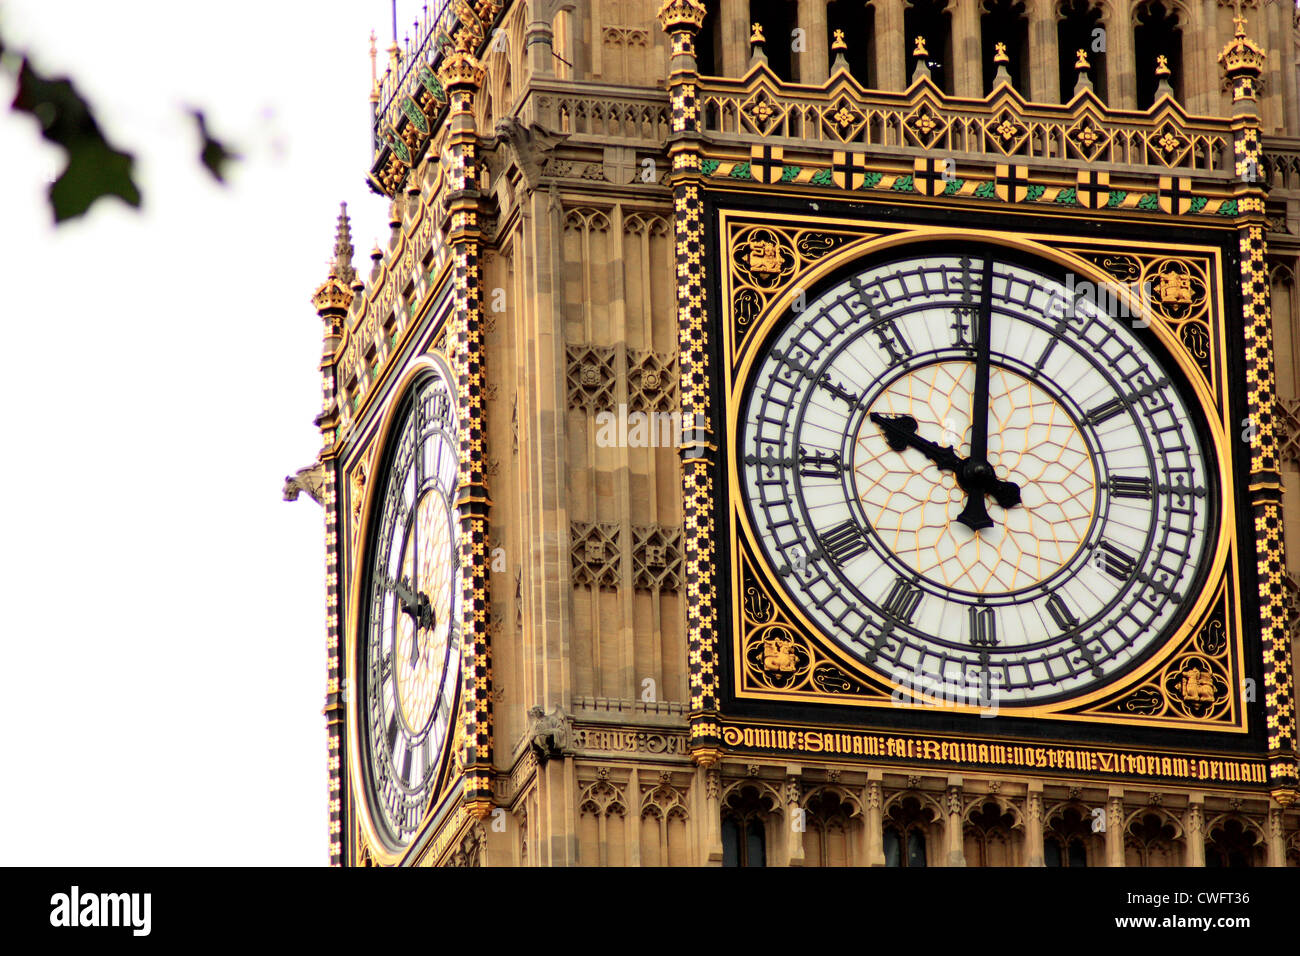 Face of the clock on the clocktower of the Palace of Westminster - Stock Image